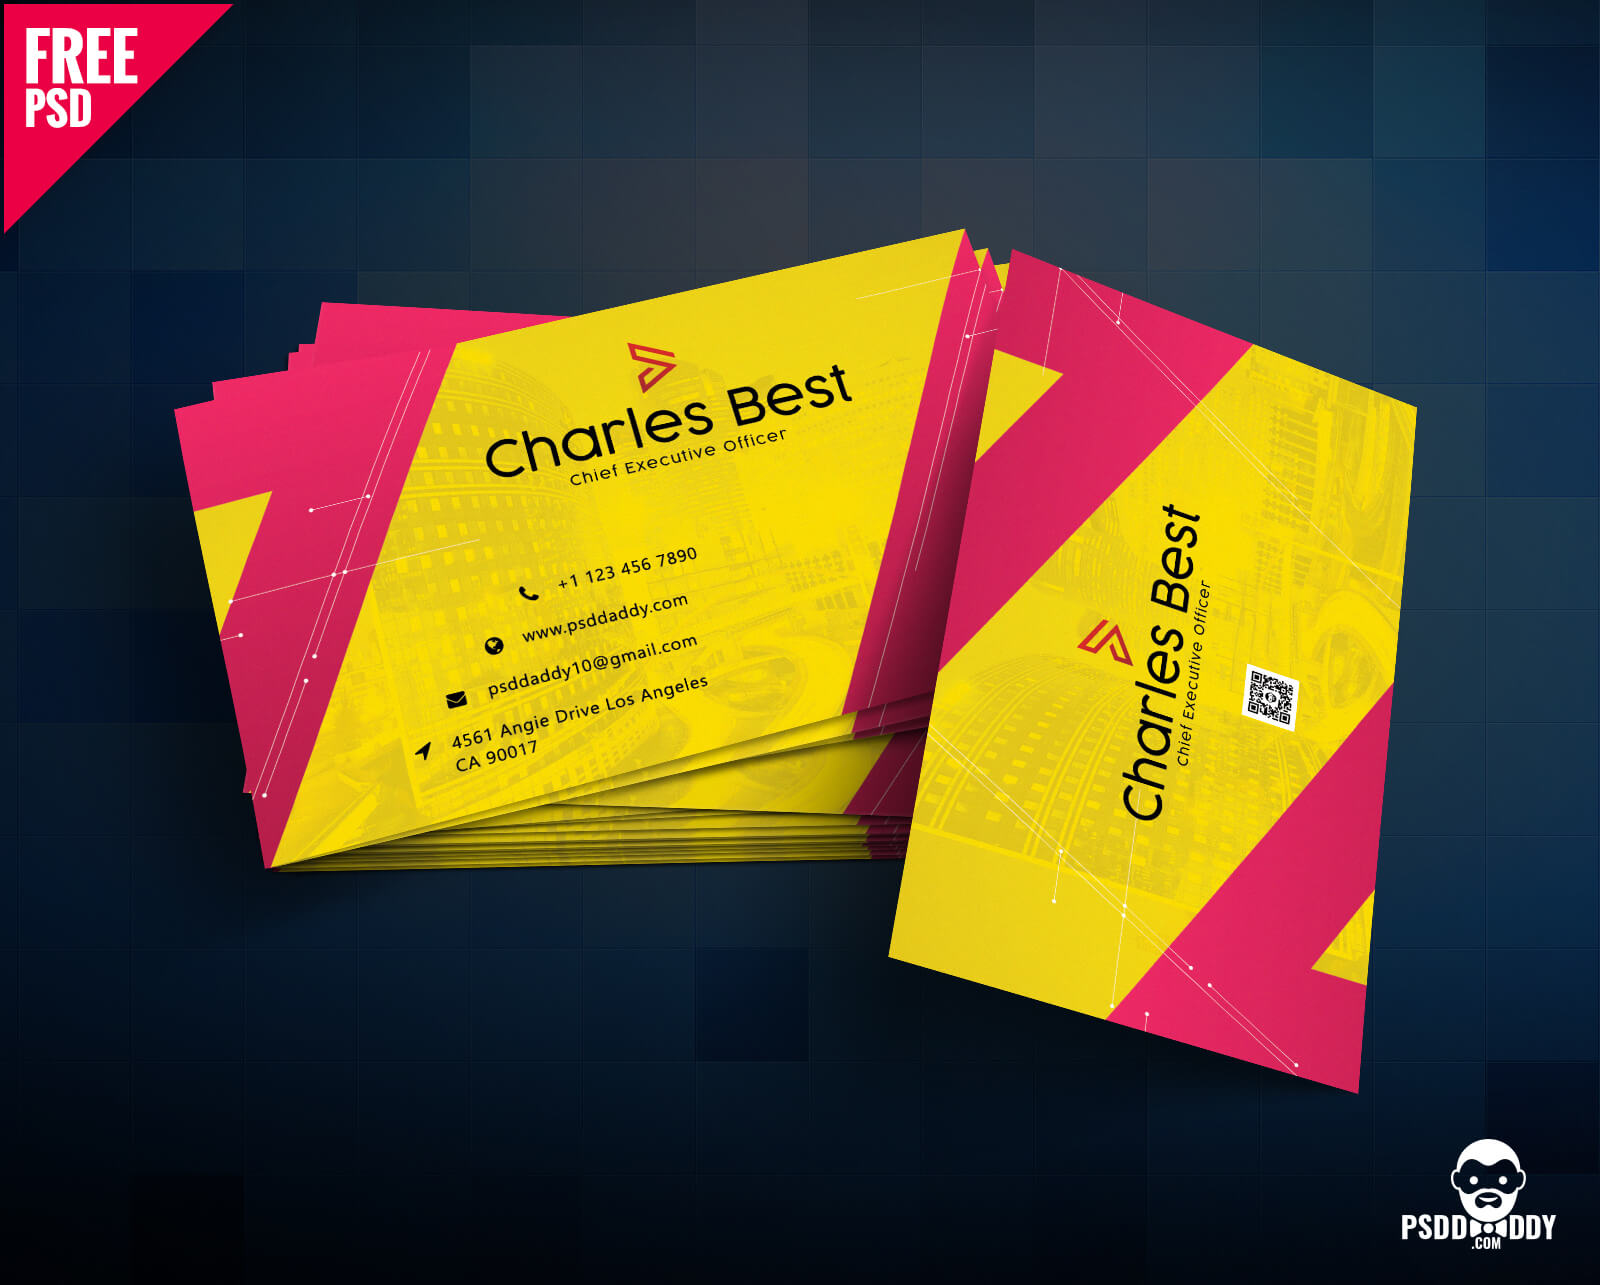 Download] Creative Business Card Free Psd | Psddaddy pertaining to Calling Card Psd Template